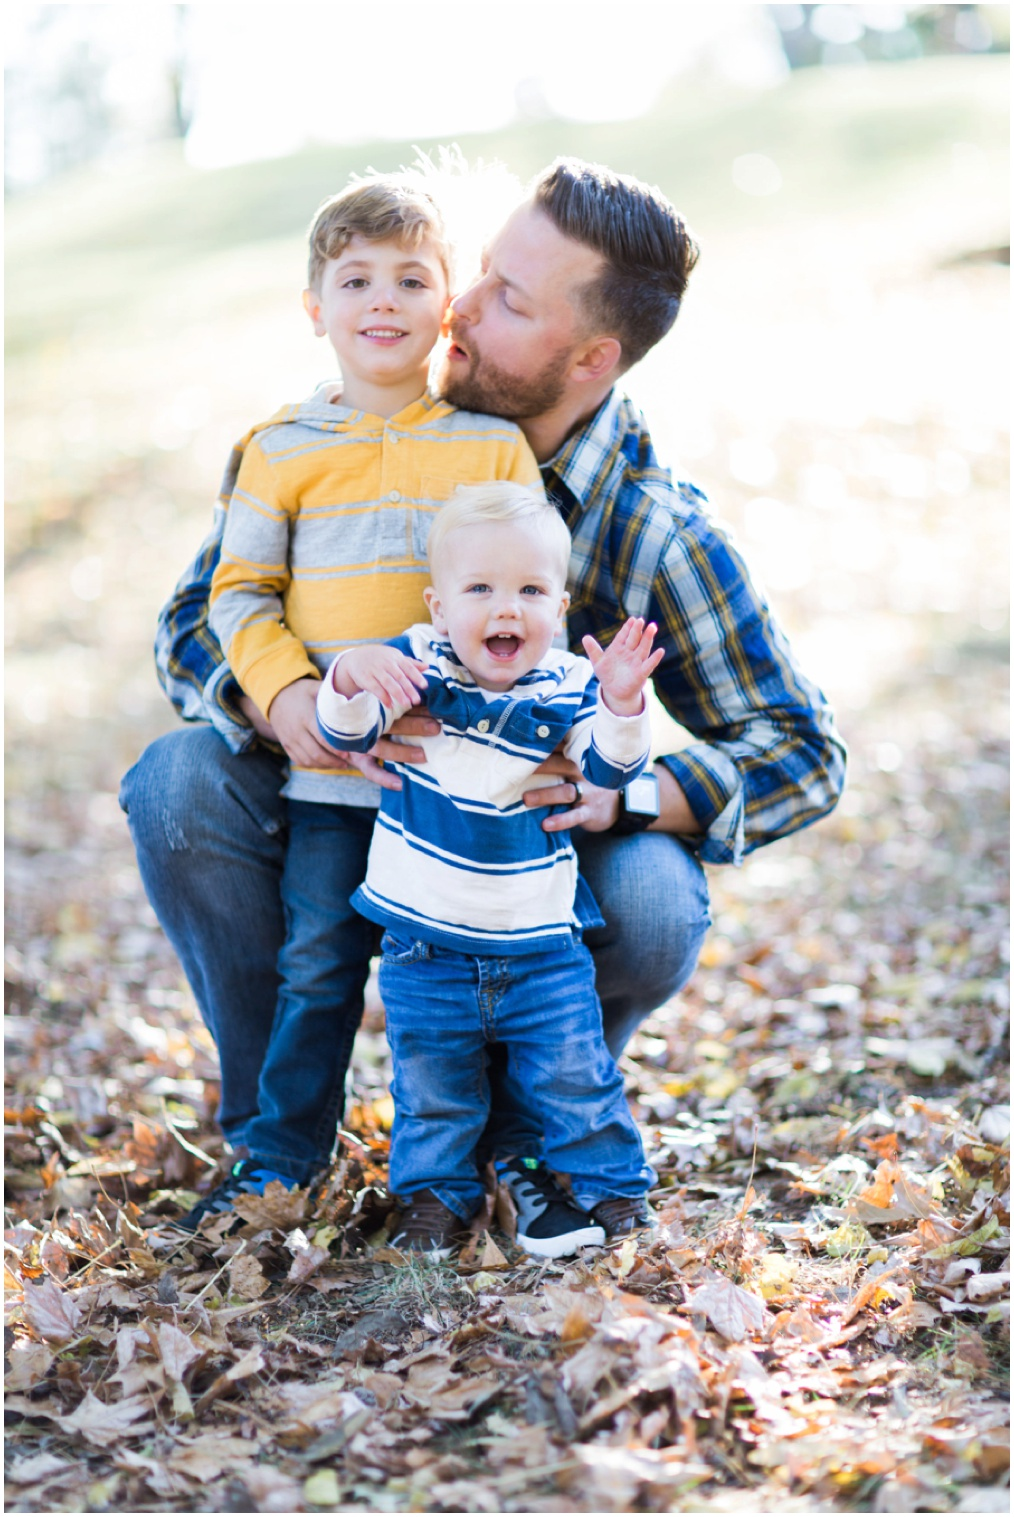 photography-family-st-louis-2.jpg